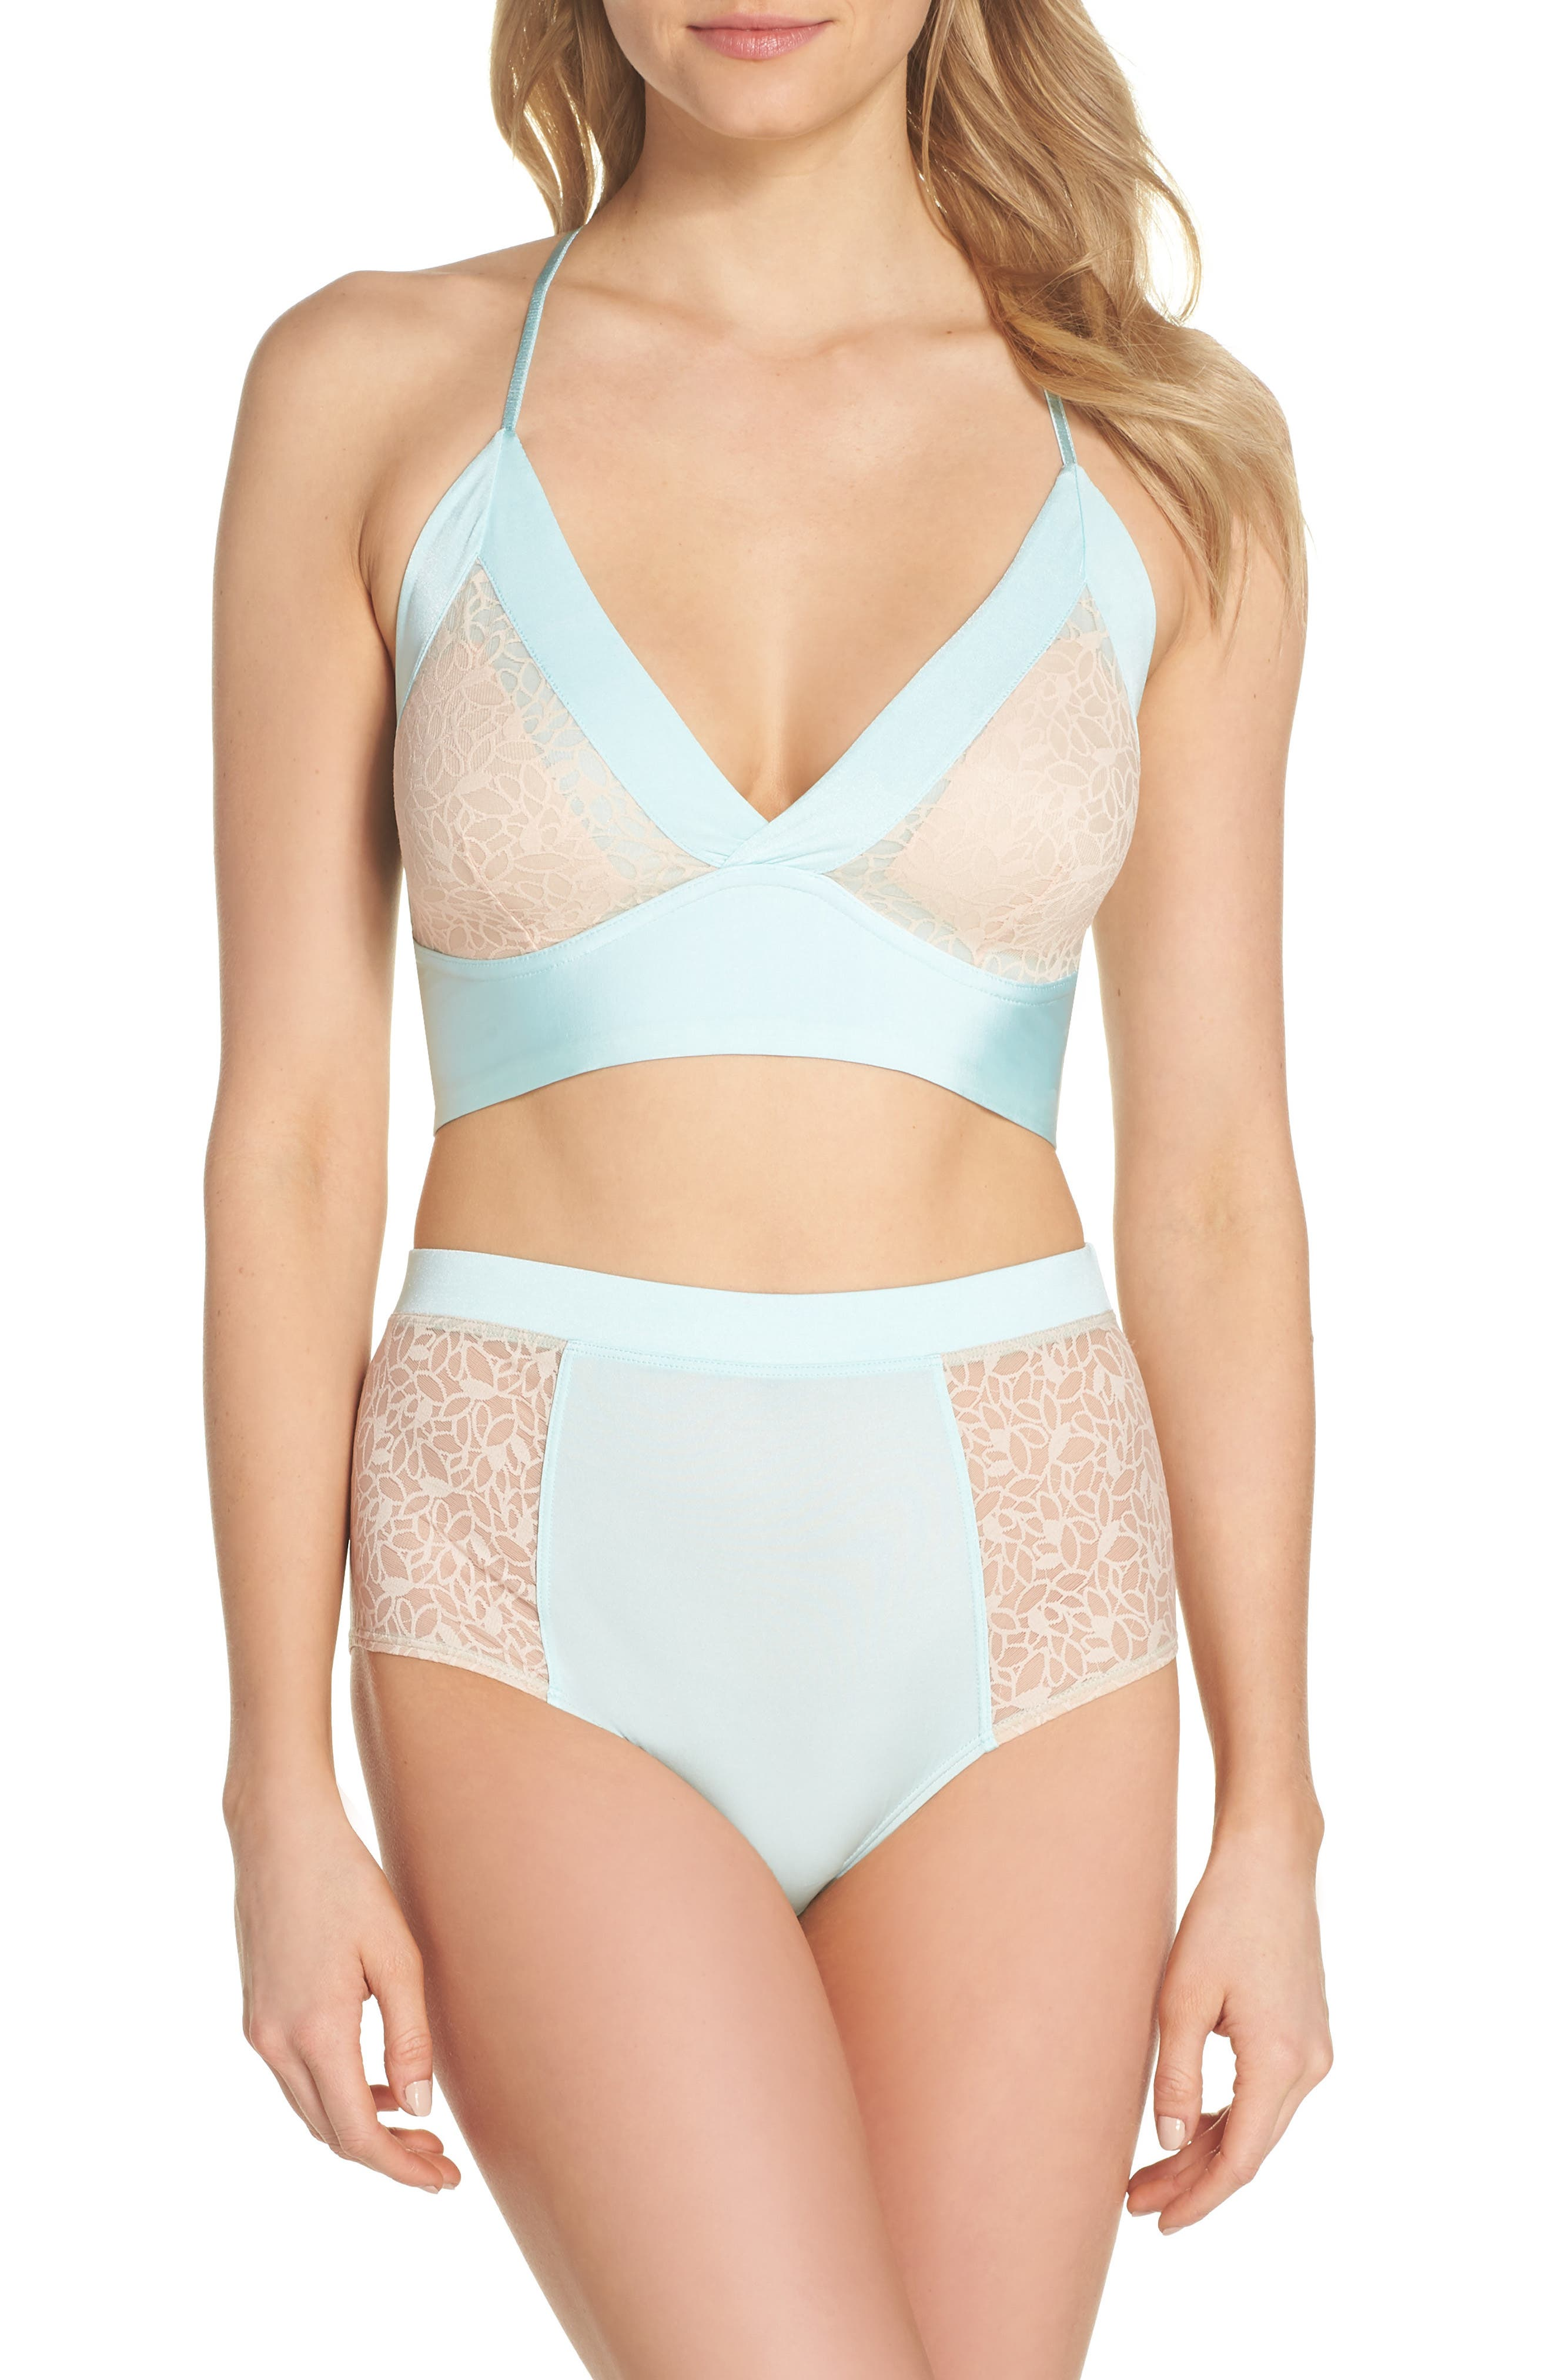 Satin Lace Wireless Bralette,                             Alternate thumbnail 8, color,                             450